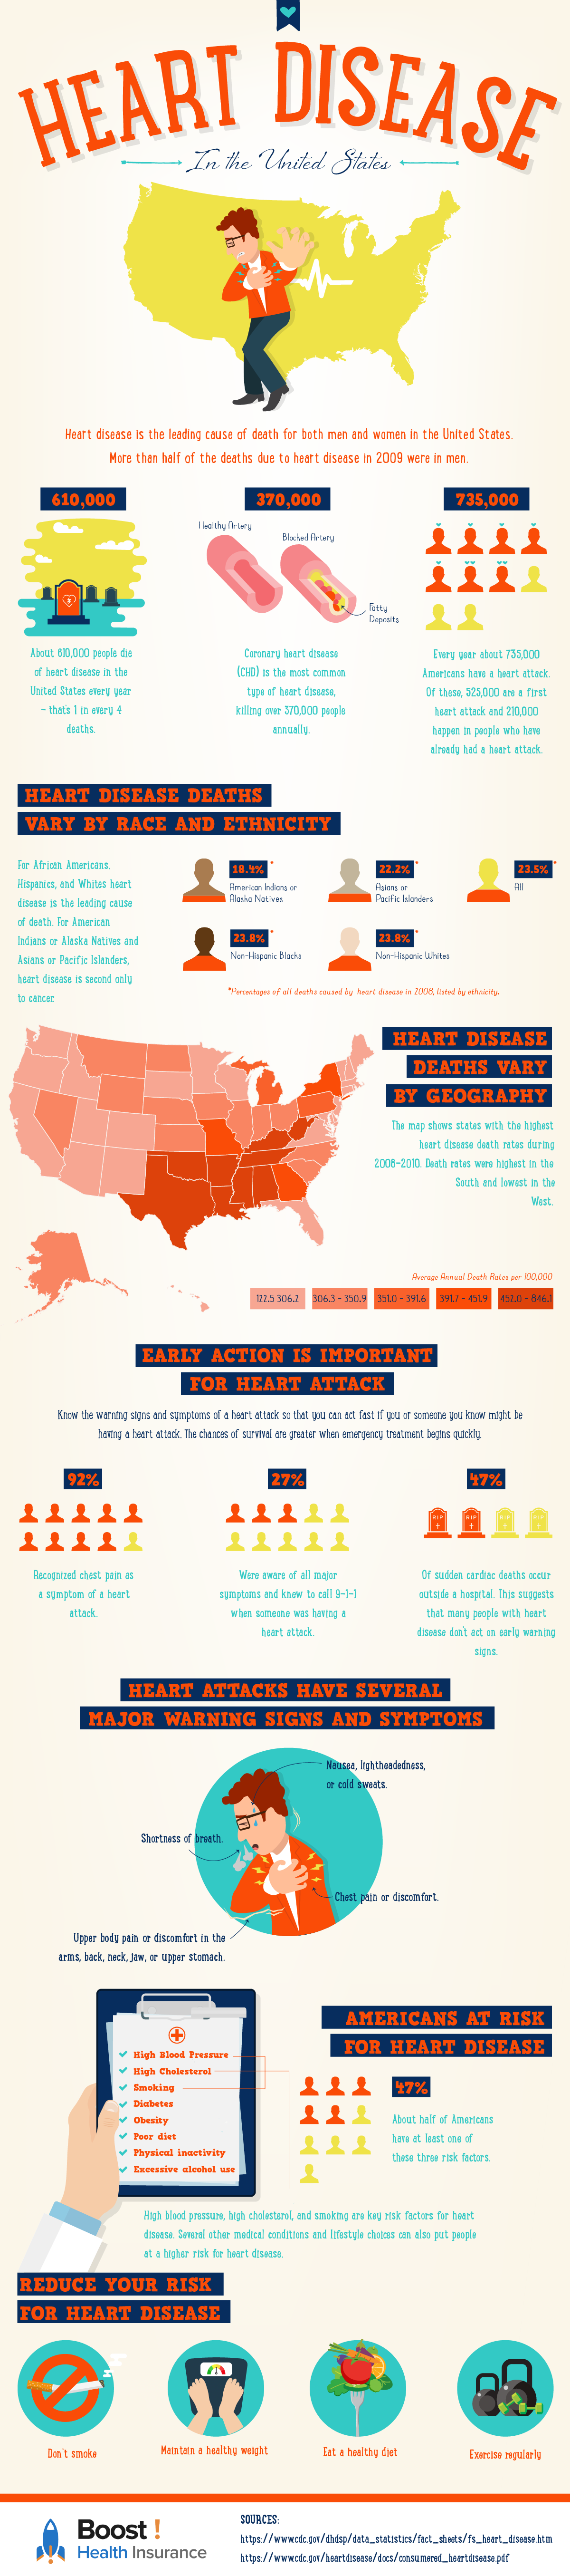 Heart Disease In The United States Boost! Health